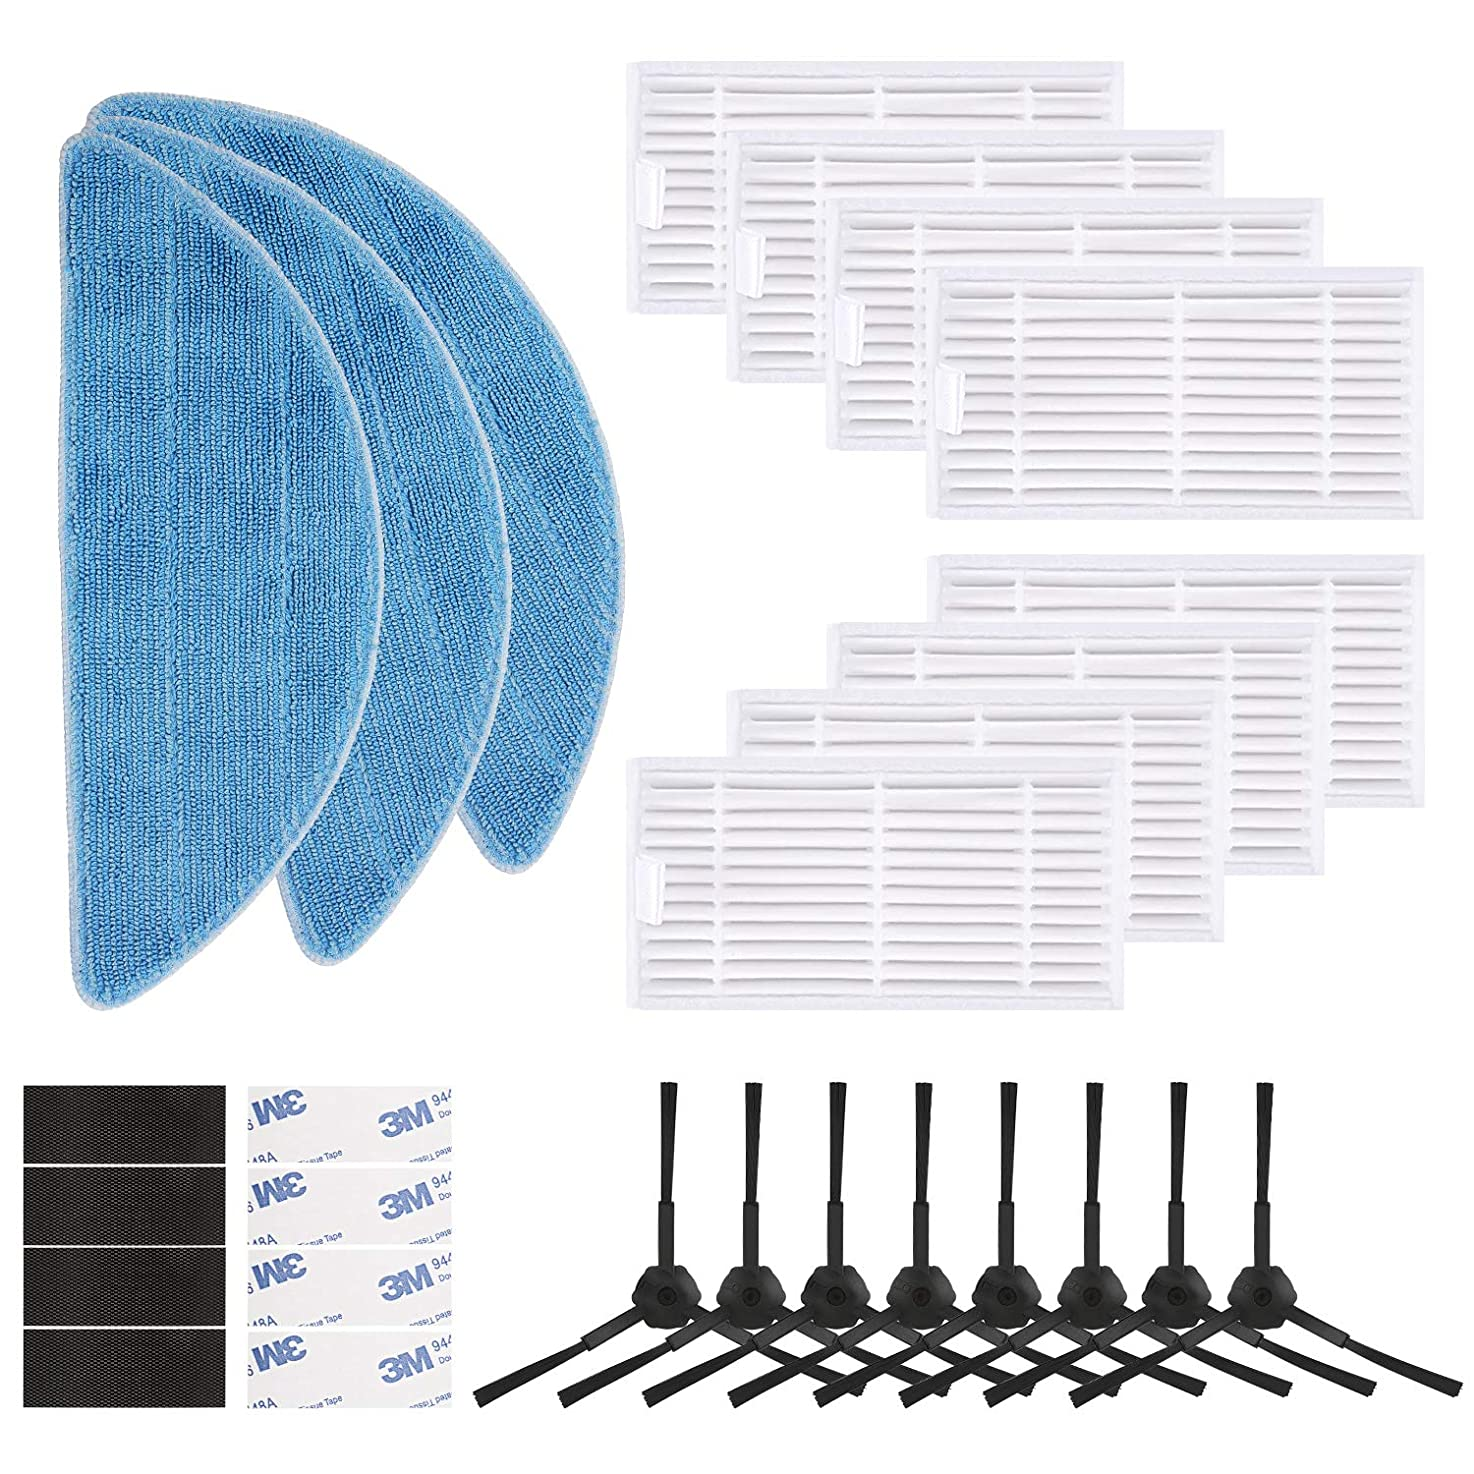 isinlive Replacement Set Compatible with ILIFE V3 V3s V5 V5s V5s pro Robot Vacuum Cleaner Including 8 Side Brushes + 8 Hepa Filters + 3 Mop Pads + 8 Magic Pastes